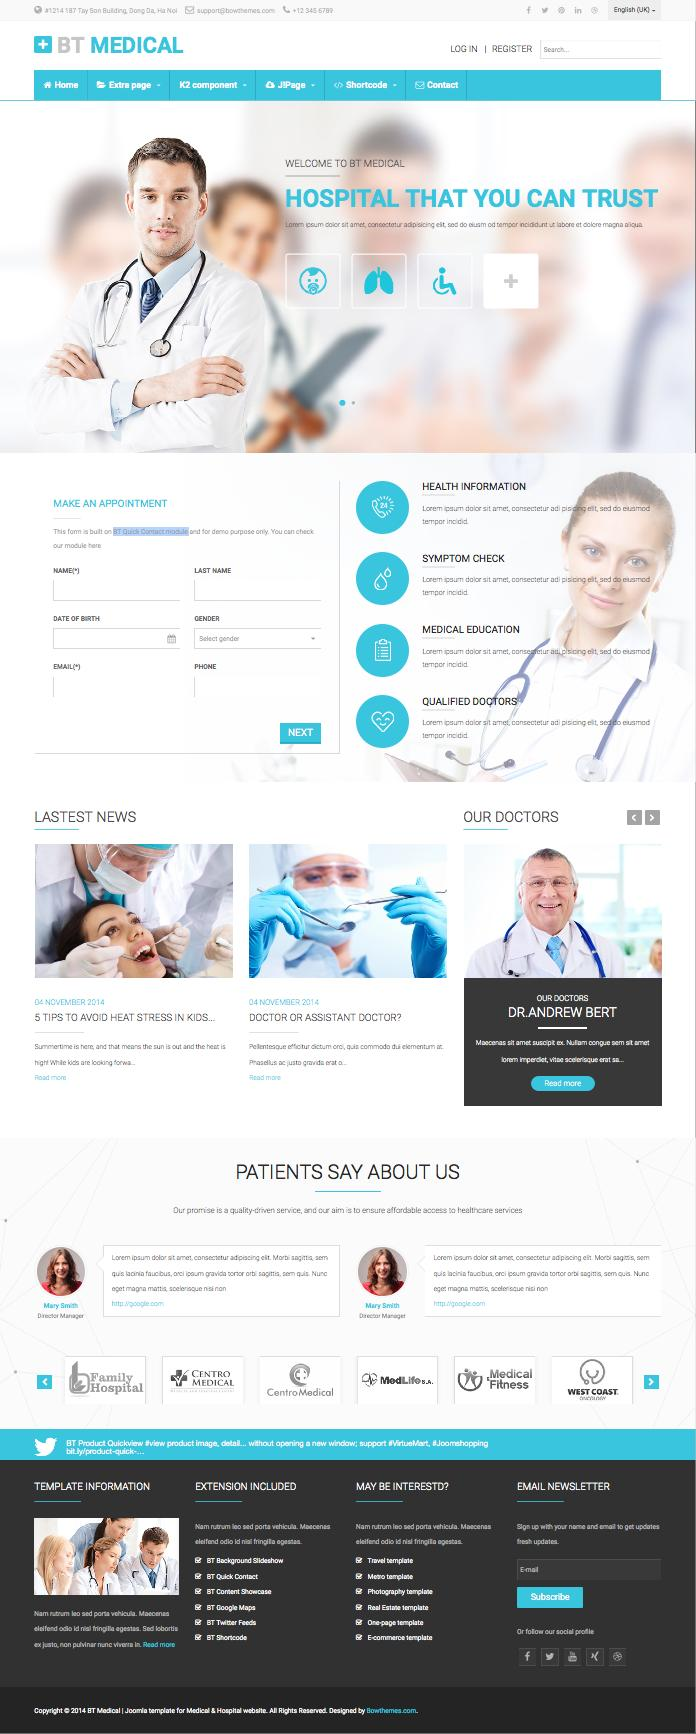 Hospital Joomla Templates BT Medical Joomla Template for Hospital & Doctors